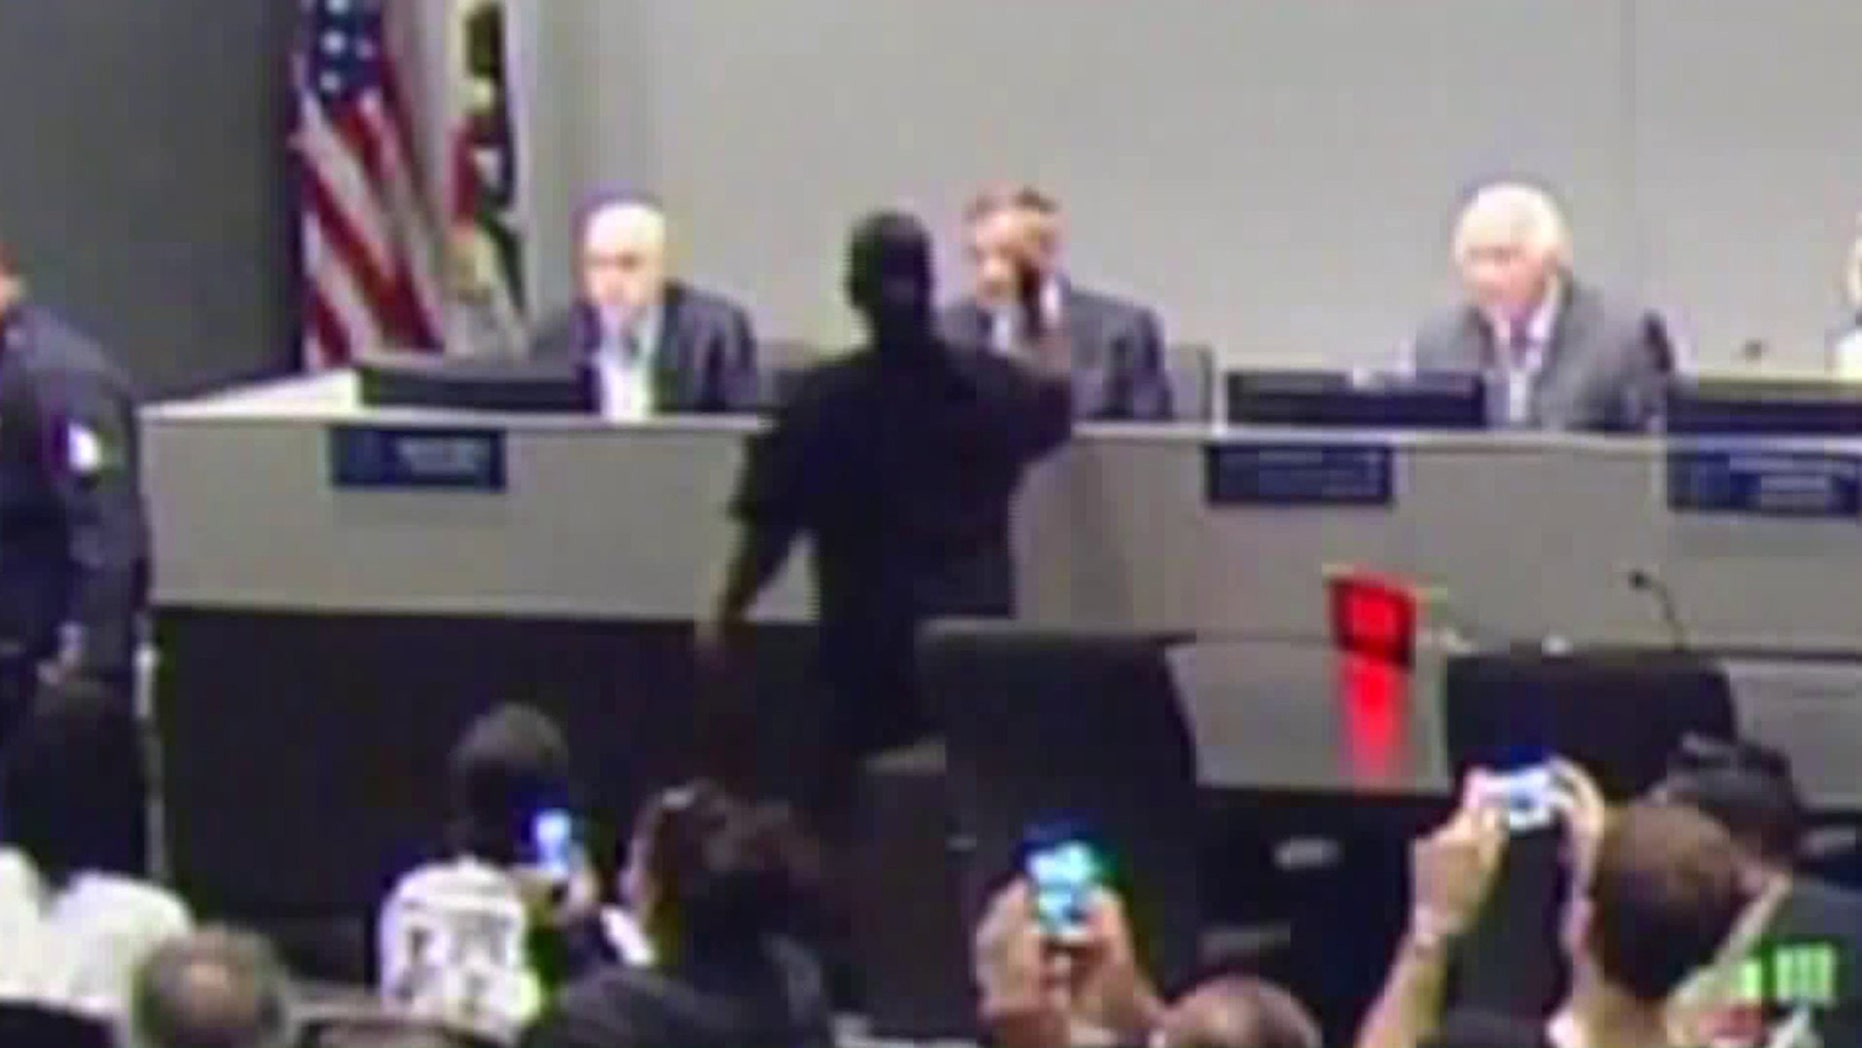 Footage of the LAPD commission meeting appears to show Sheila Hines-Brim throw ashes at Chief Charlie Beck.